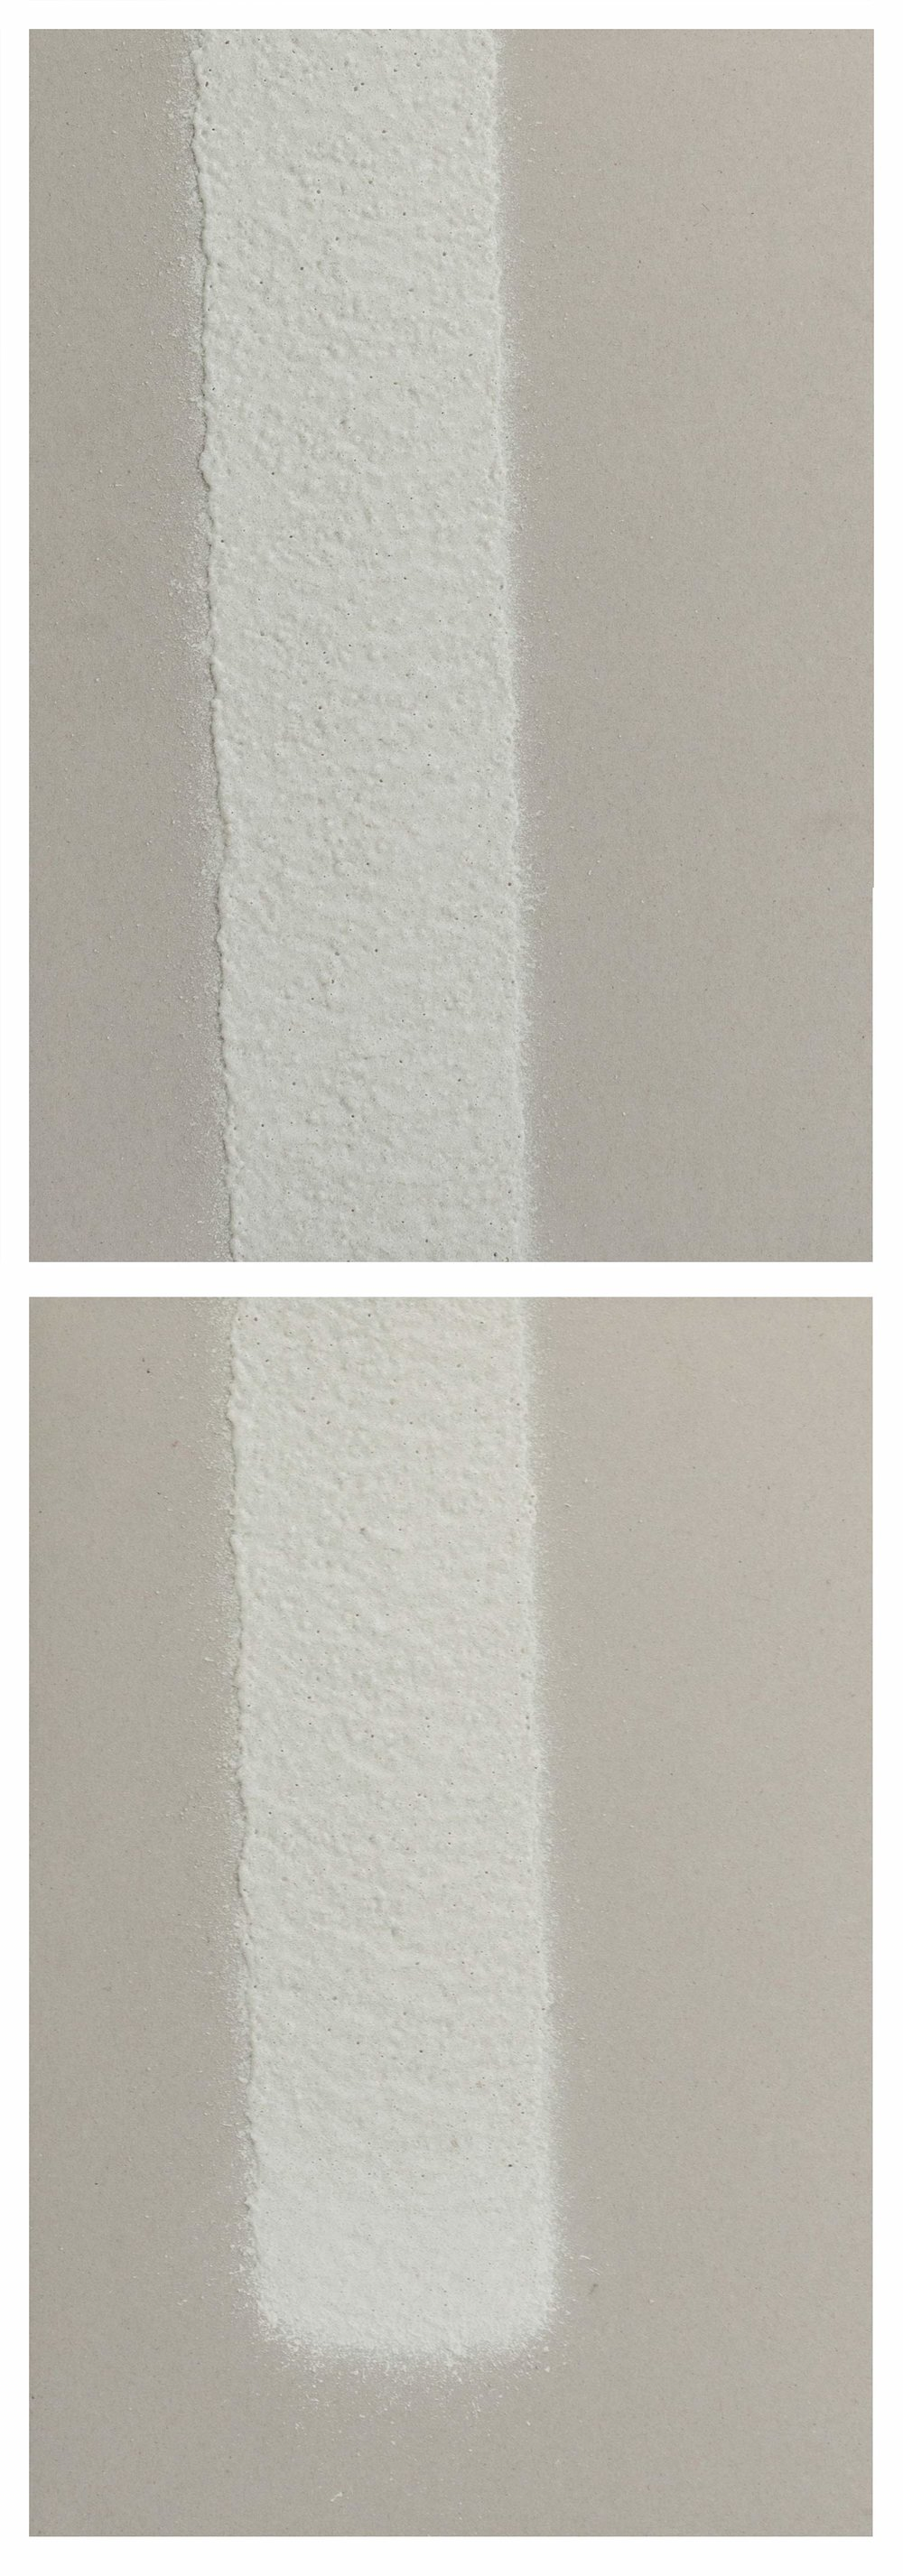 100mm (W), 1.2mm (T), White, Parking envelope line (620), 1000mm (L), machine marking, remarking, Al Barsha 1, St 25b,  2017  Thermoplastic paint, reflective glass particles and grey board  Diptych: 50 x 35 cm each